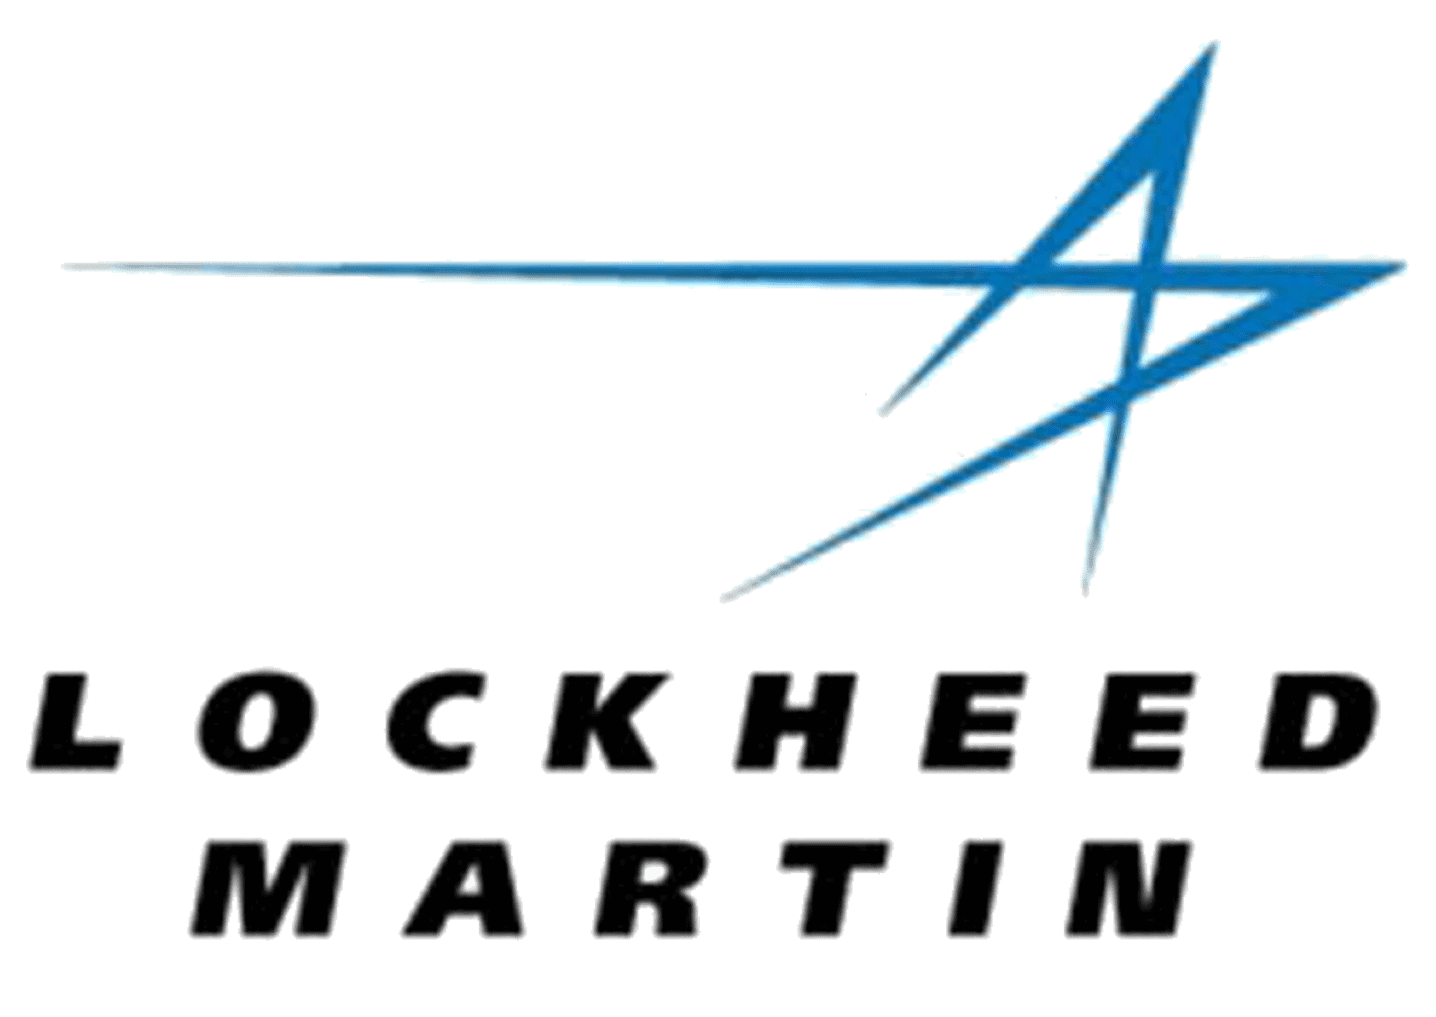 Lockheed Martin Corporation (NYSE:LMT)